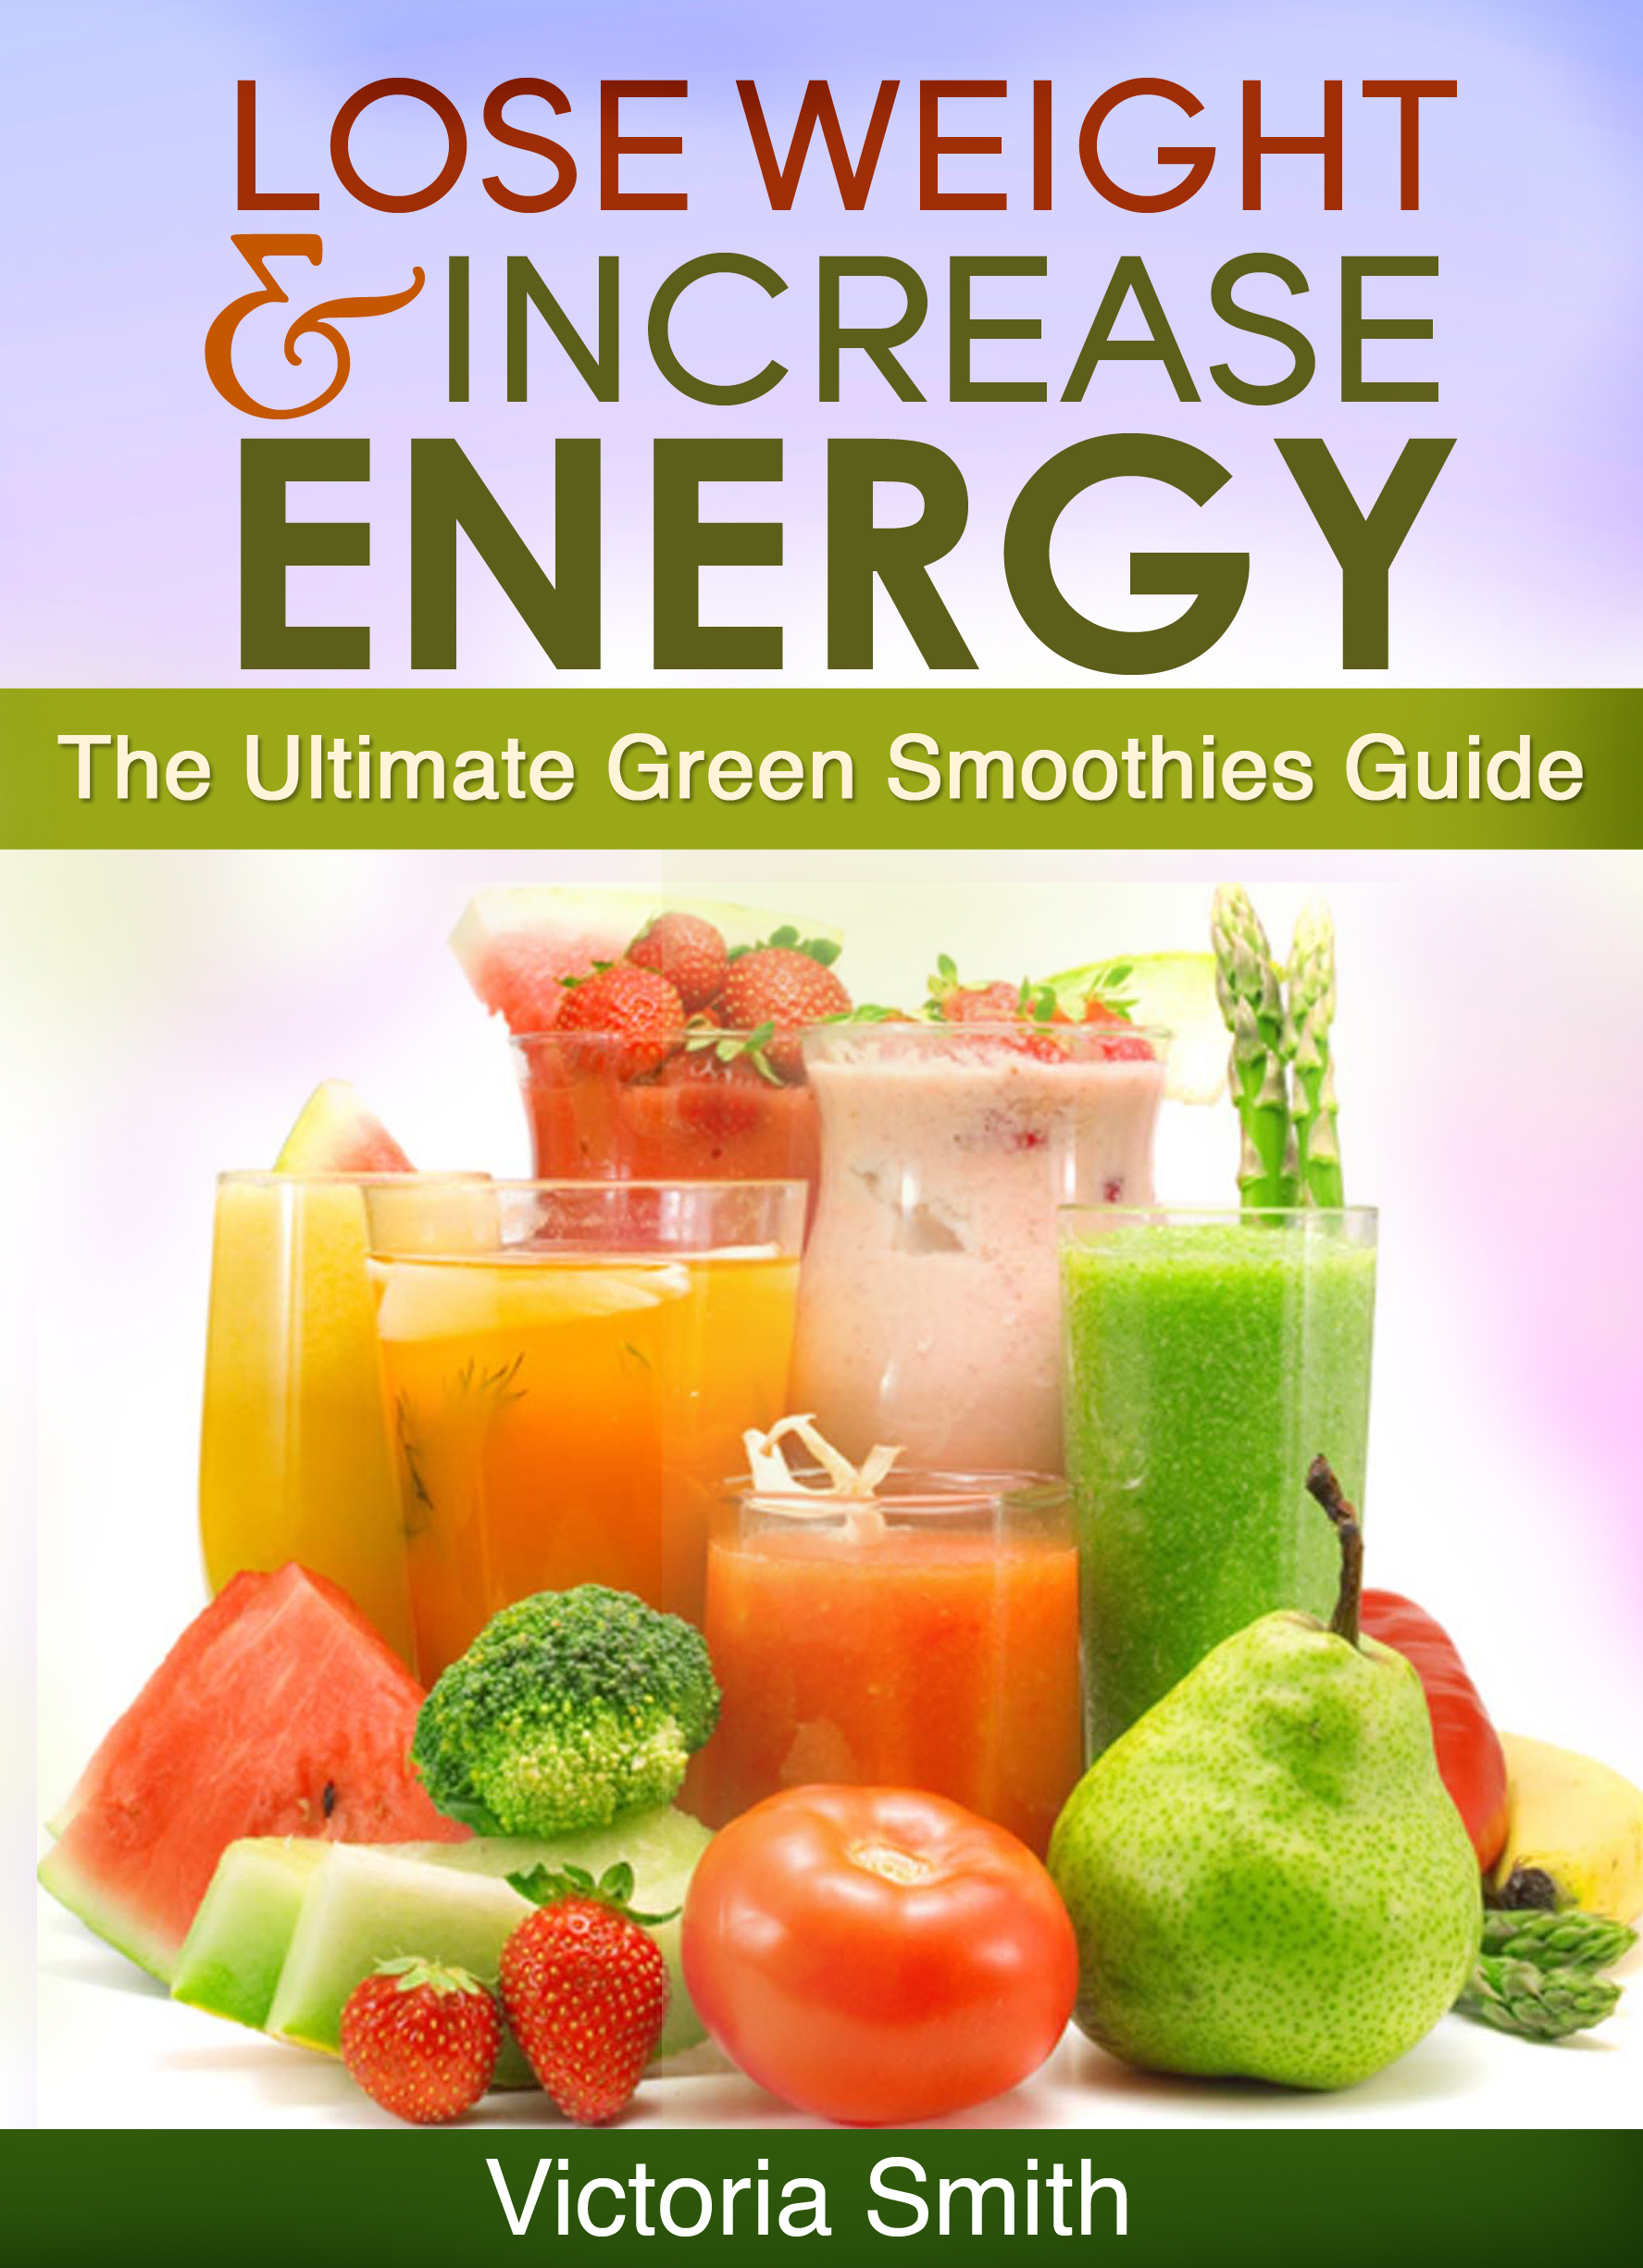 The Ultimate Green Smoothies Guide (Lose Weight & Increase Energy)